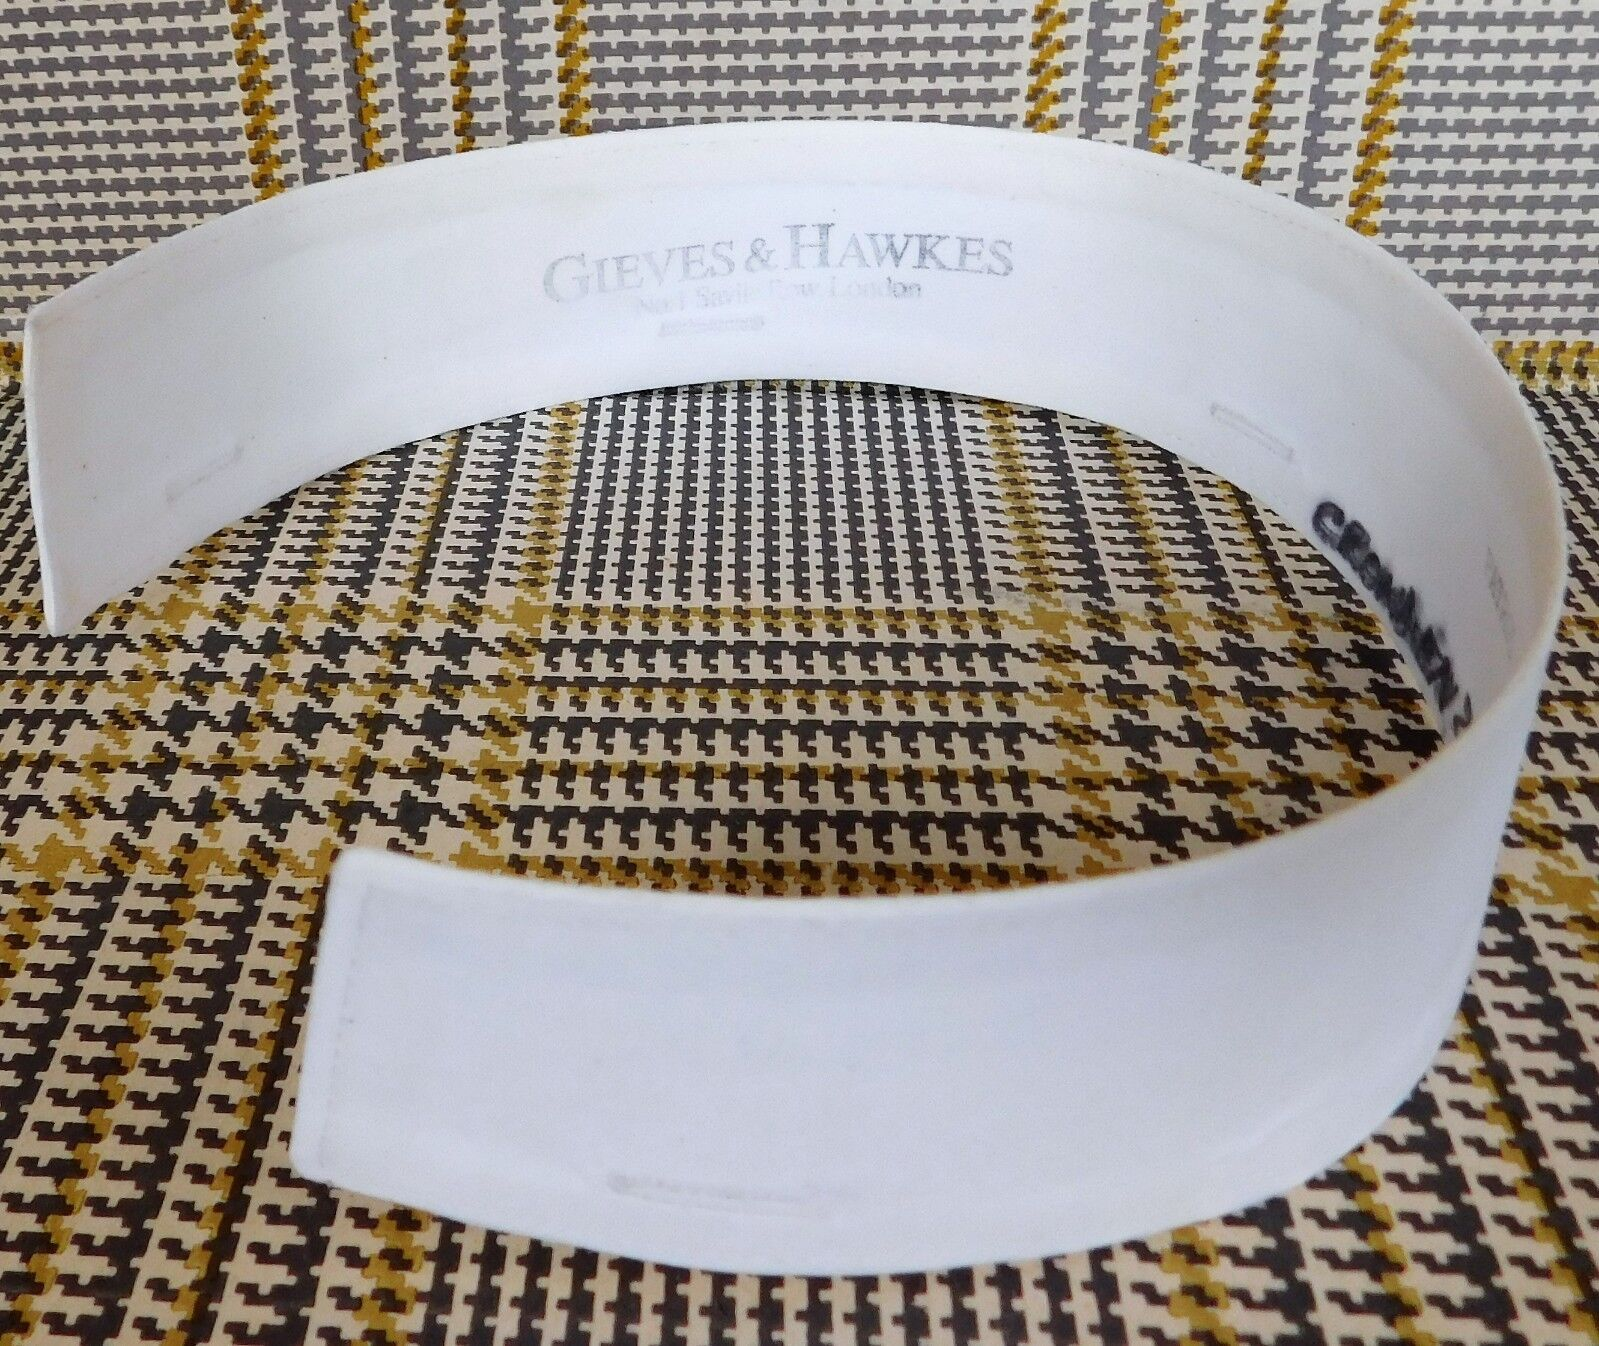 Gieves & Hawkes Patrol collar size 17.5 vintage officers uniform army navy